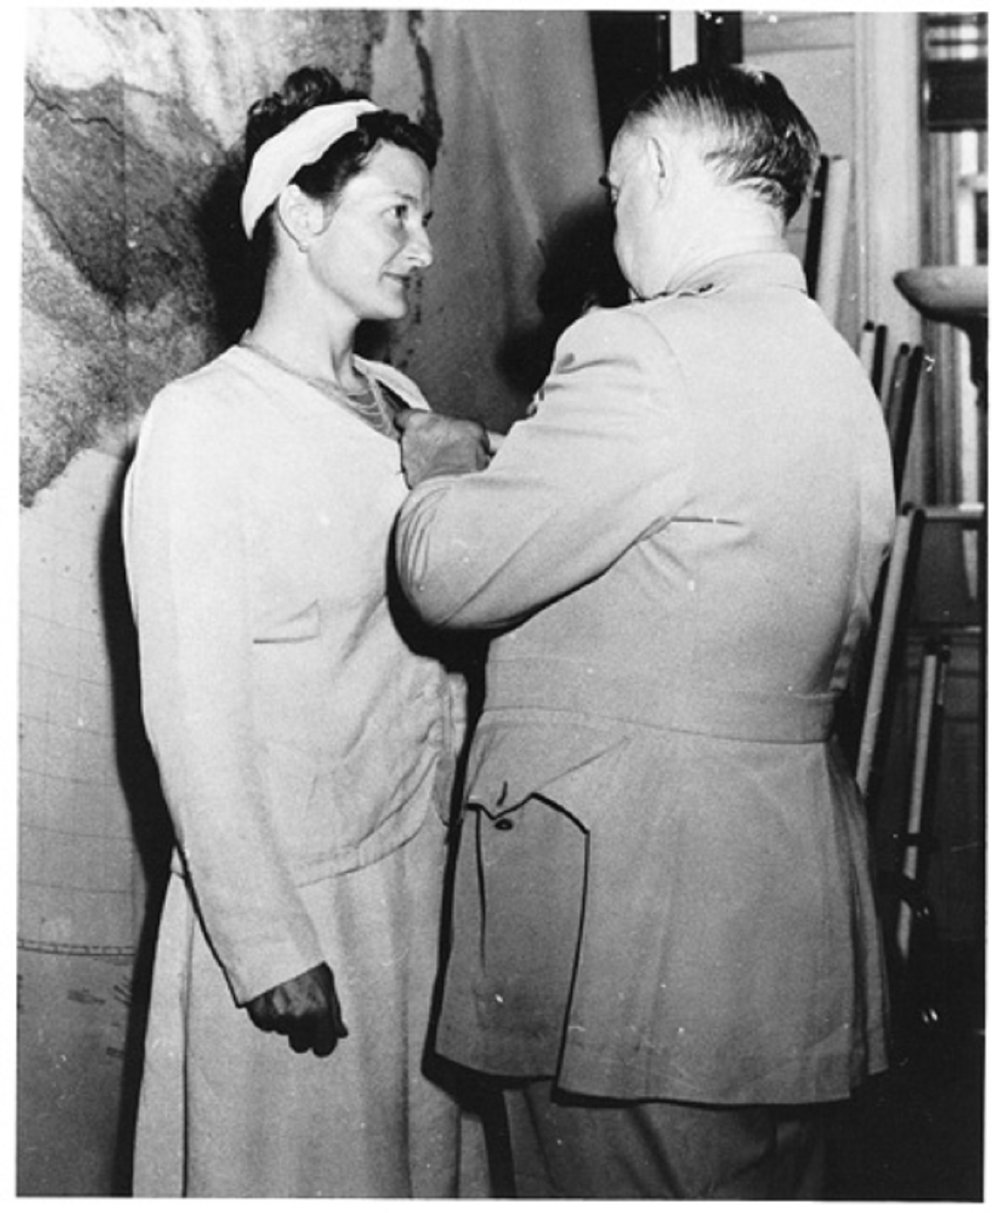 General William J. Donovan, Chief of the US Office of Strategic Services, awarded the Distinguished Service Cross to Virginia Hall on September 23, 1945. She declined a public event, preferring not to call attention to her war time identities. However, Hall's mother did attend. (Public domain photo)